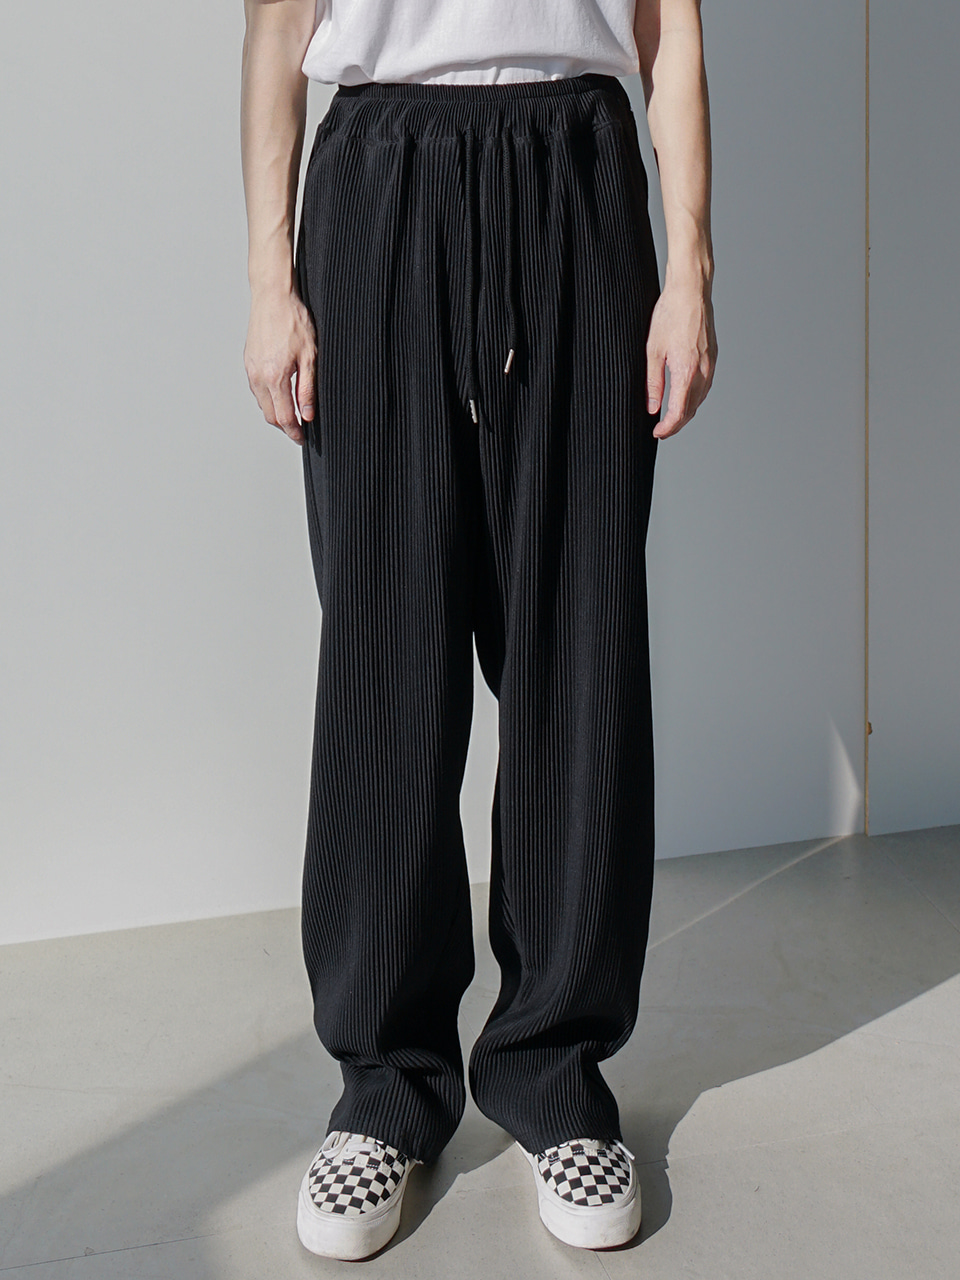 Raise Pleats Pants (2color)